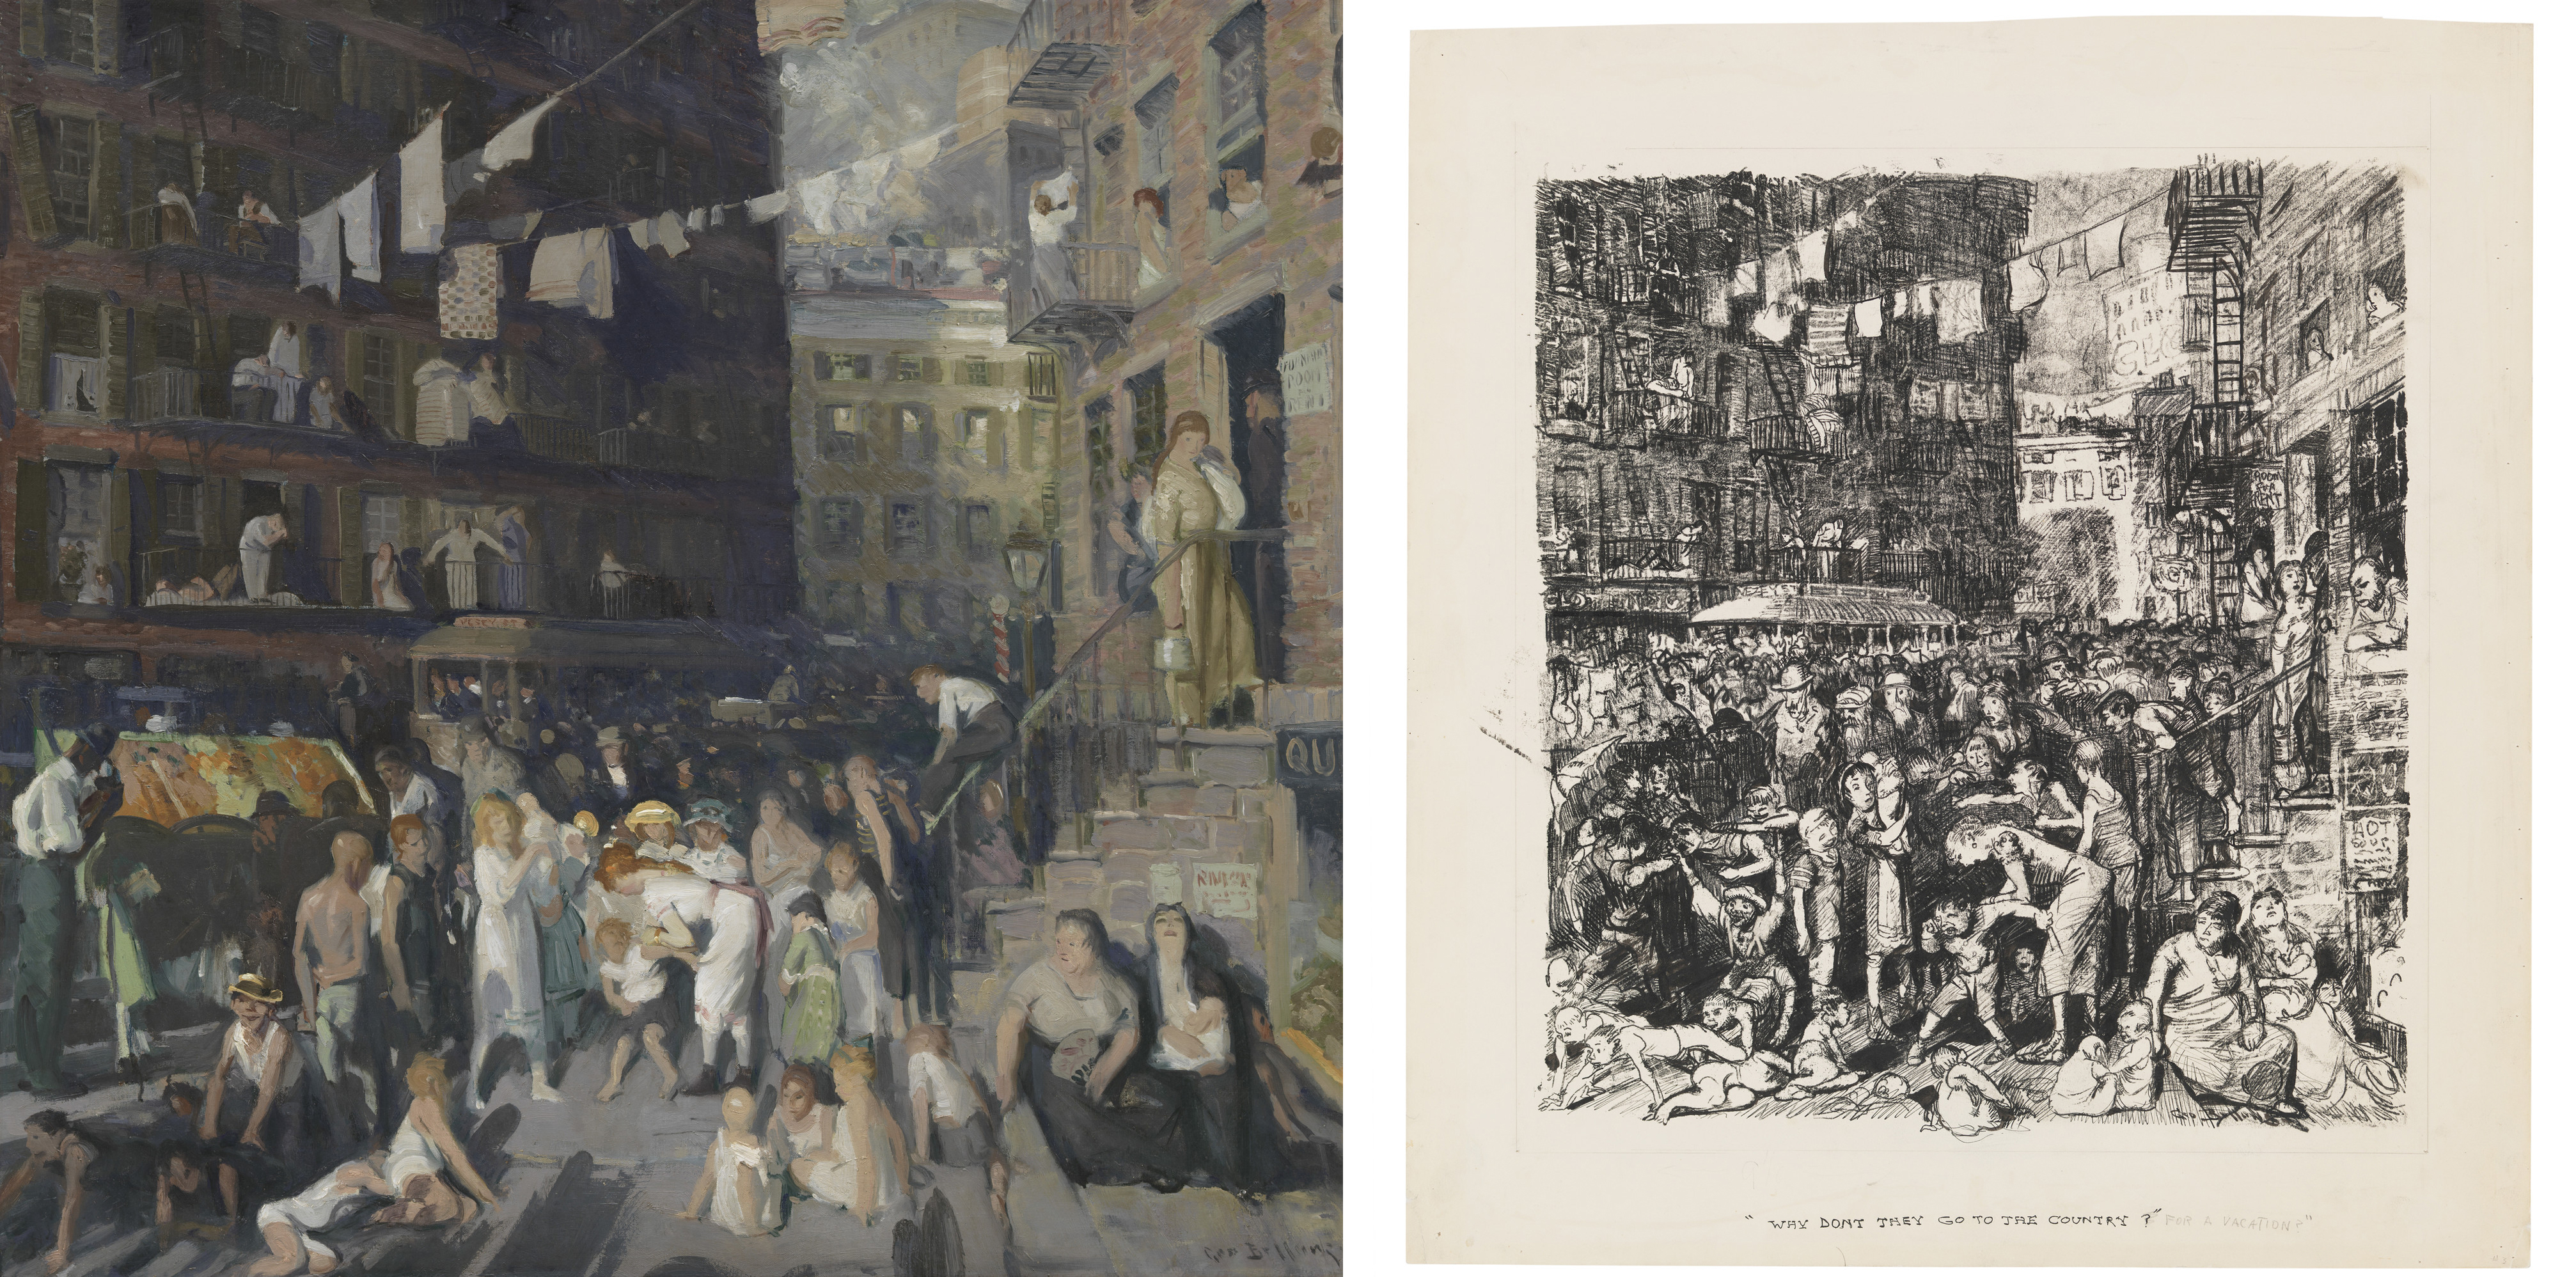 Left: George Bellows, Cliff Dwellers, 1913, Los Angeles County Museum of Art, Los Angeles County Fund, photo © Museum Associates/LACMA; Right: George Bellows, Why Don't They Go to the Country for Vacation?, 1913, Los Angeles County Museum of Art, Los Angeles County Fund, photo © Museum Associates/LACMA